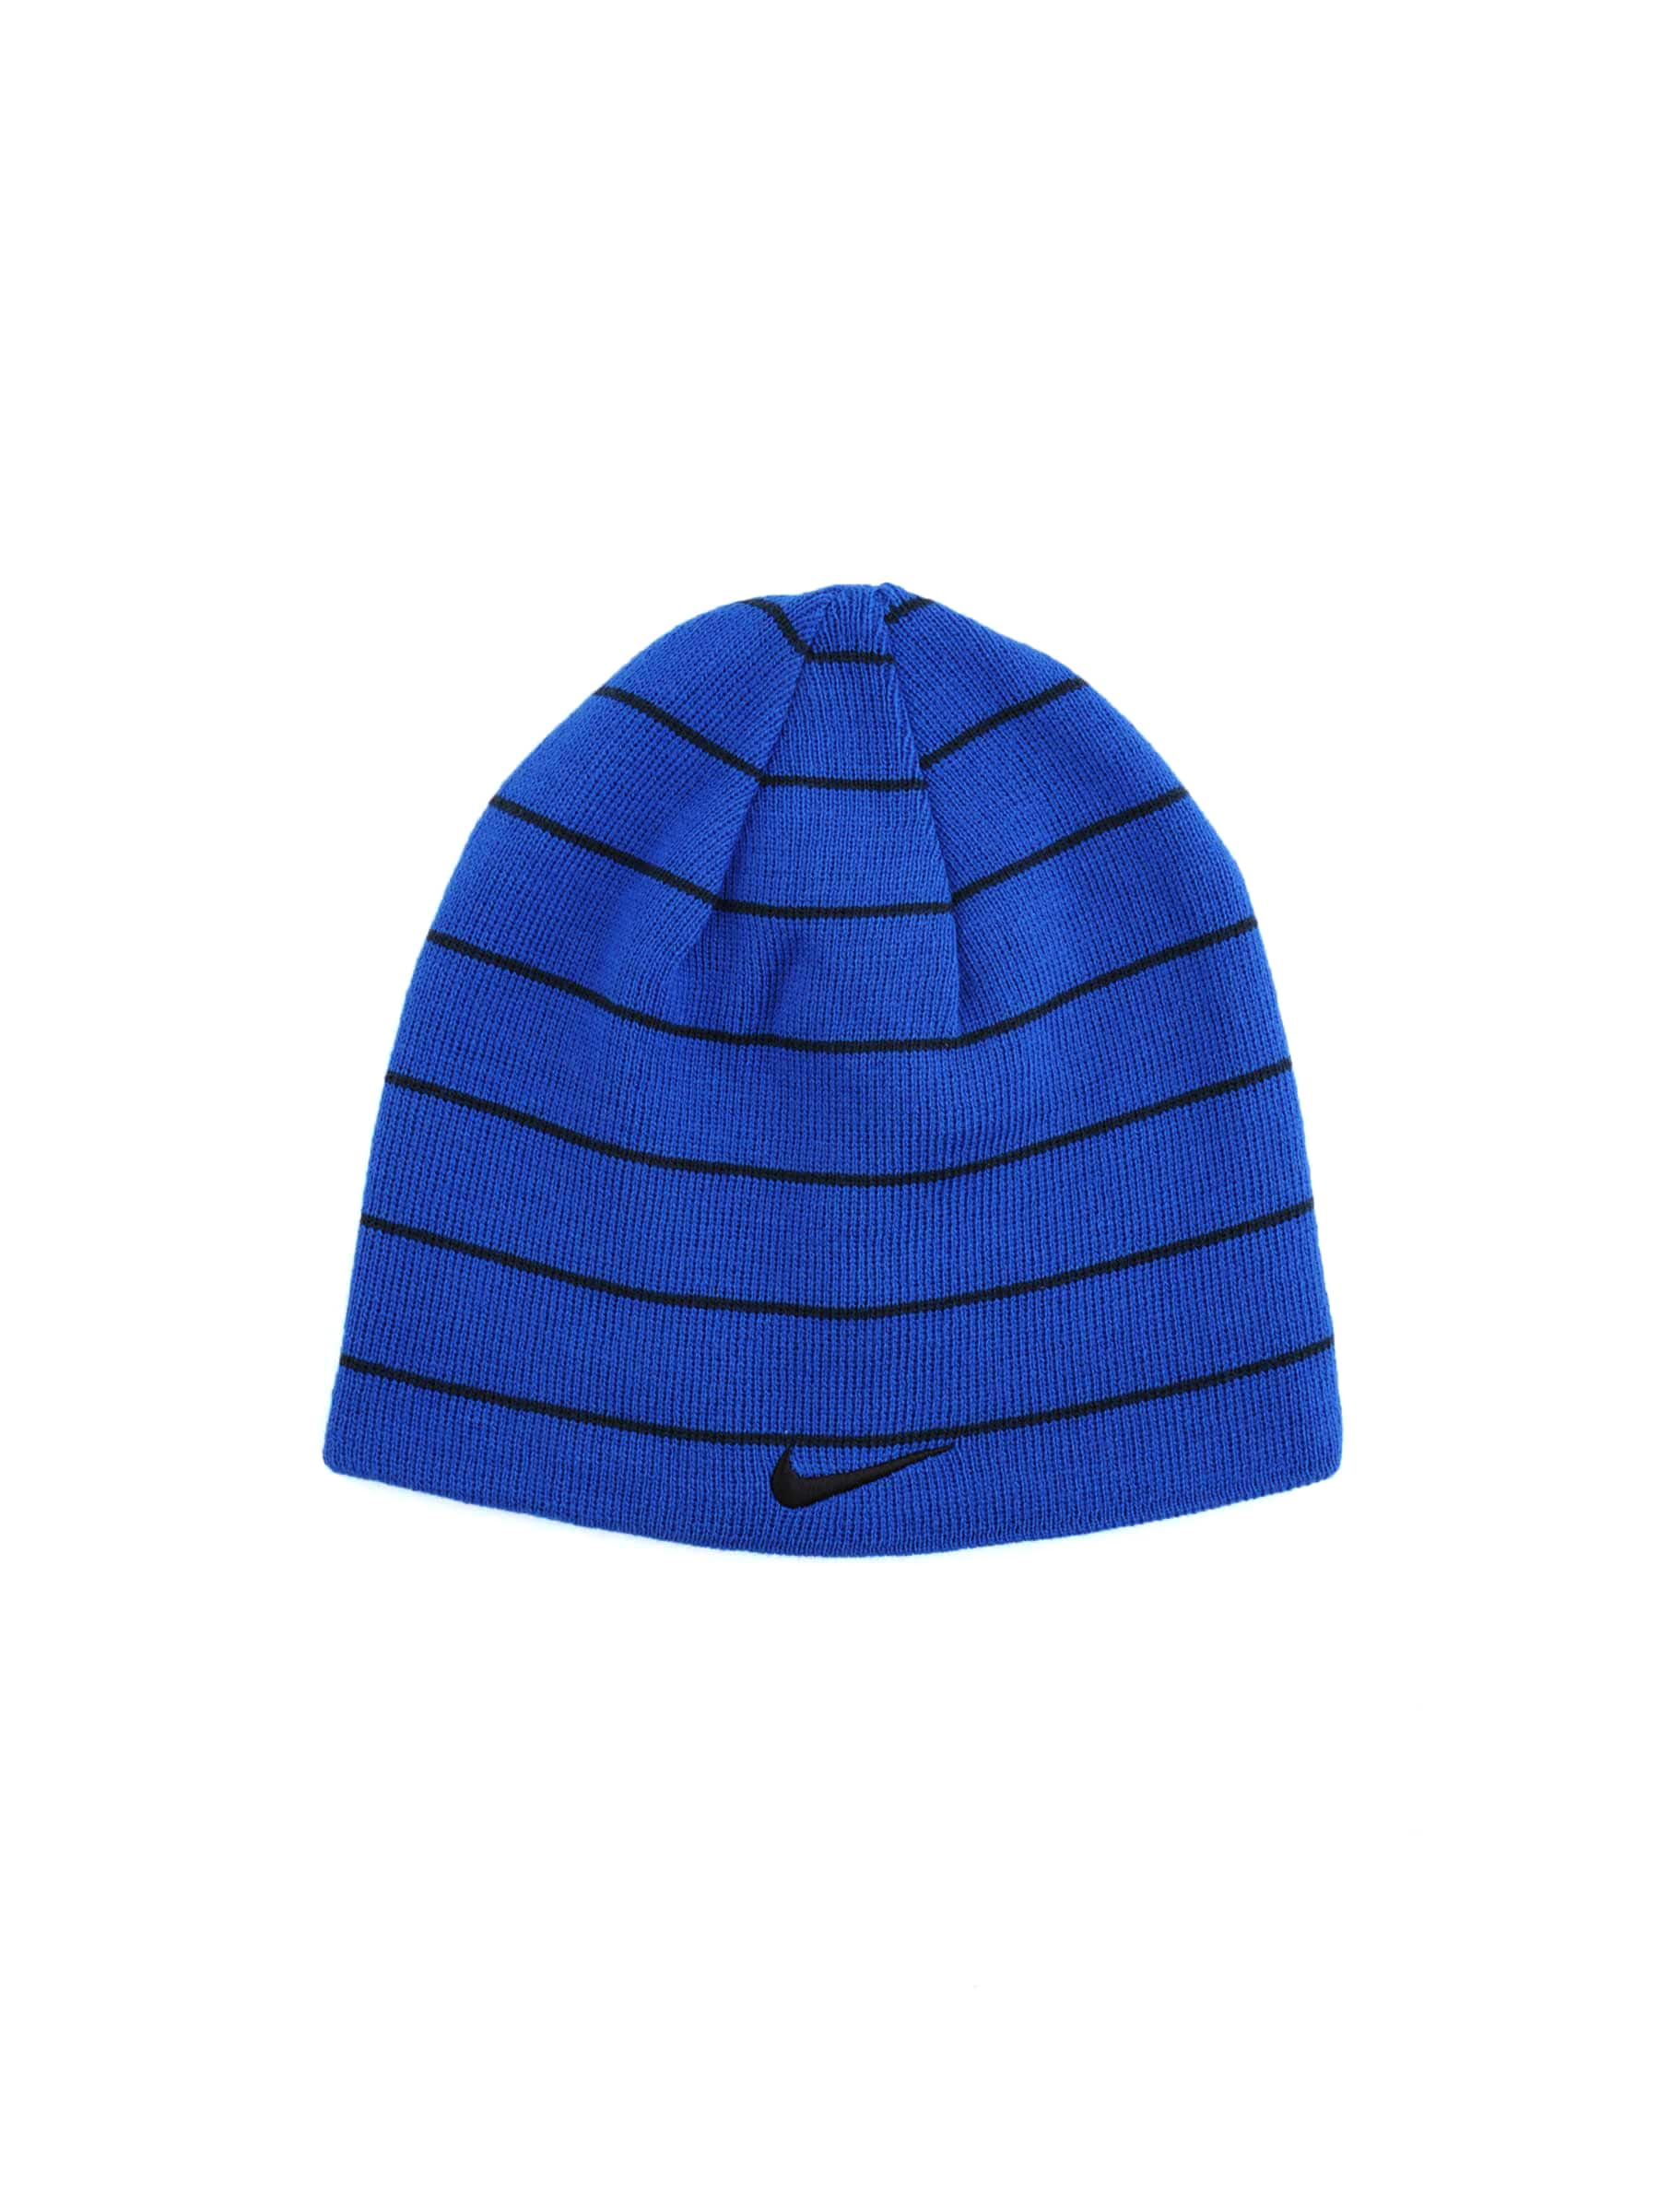 Nike 424666-493 Unisex Knit Beanie Blue Skull Cap - Best Price in ... 71f5d32bd82